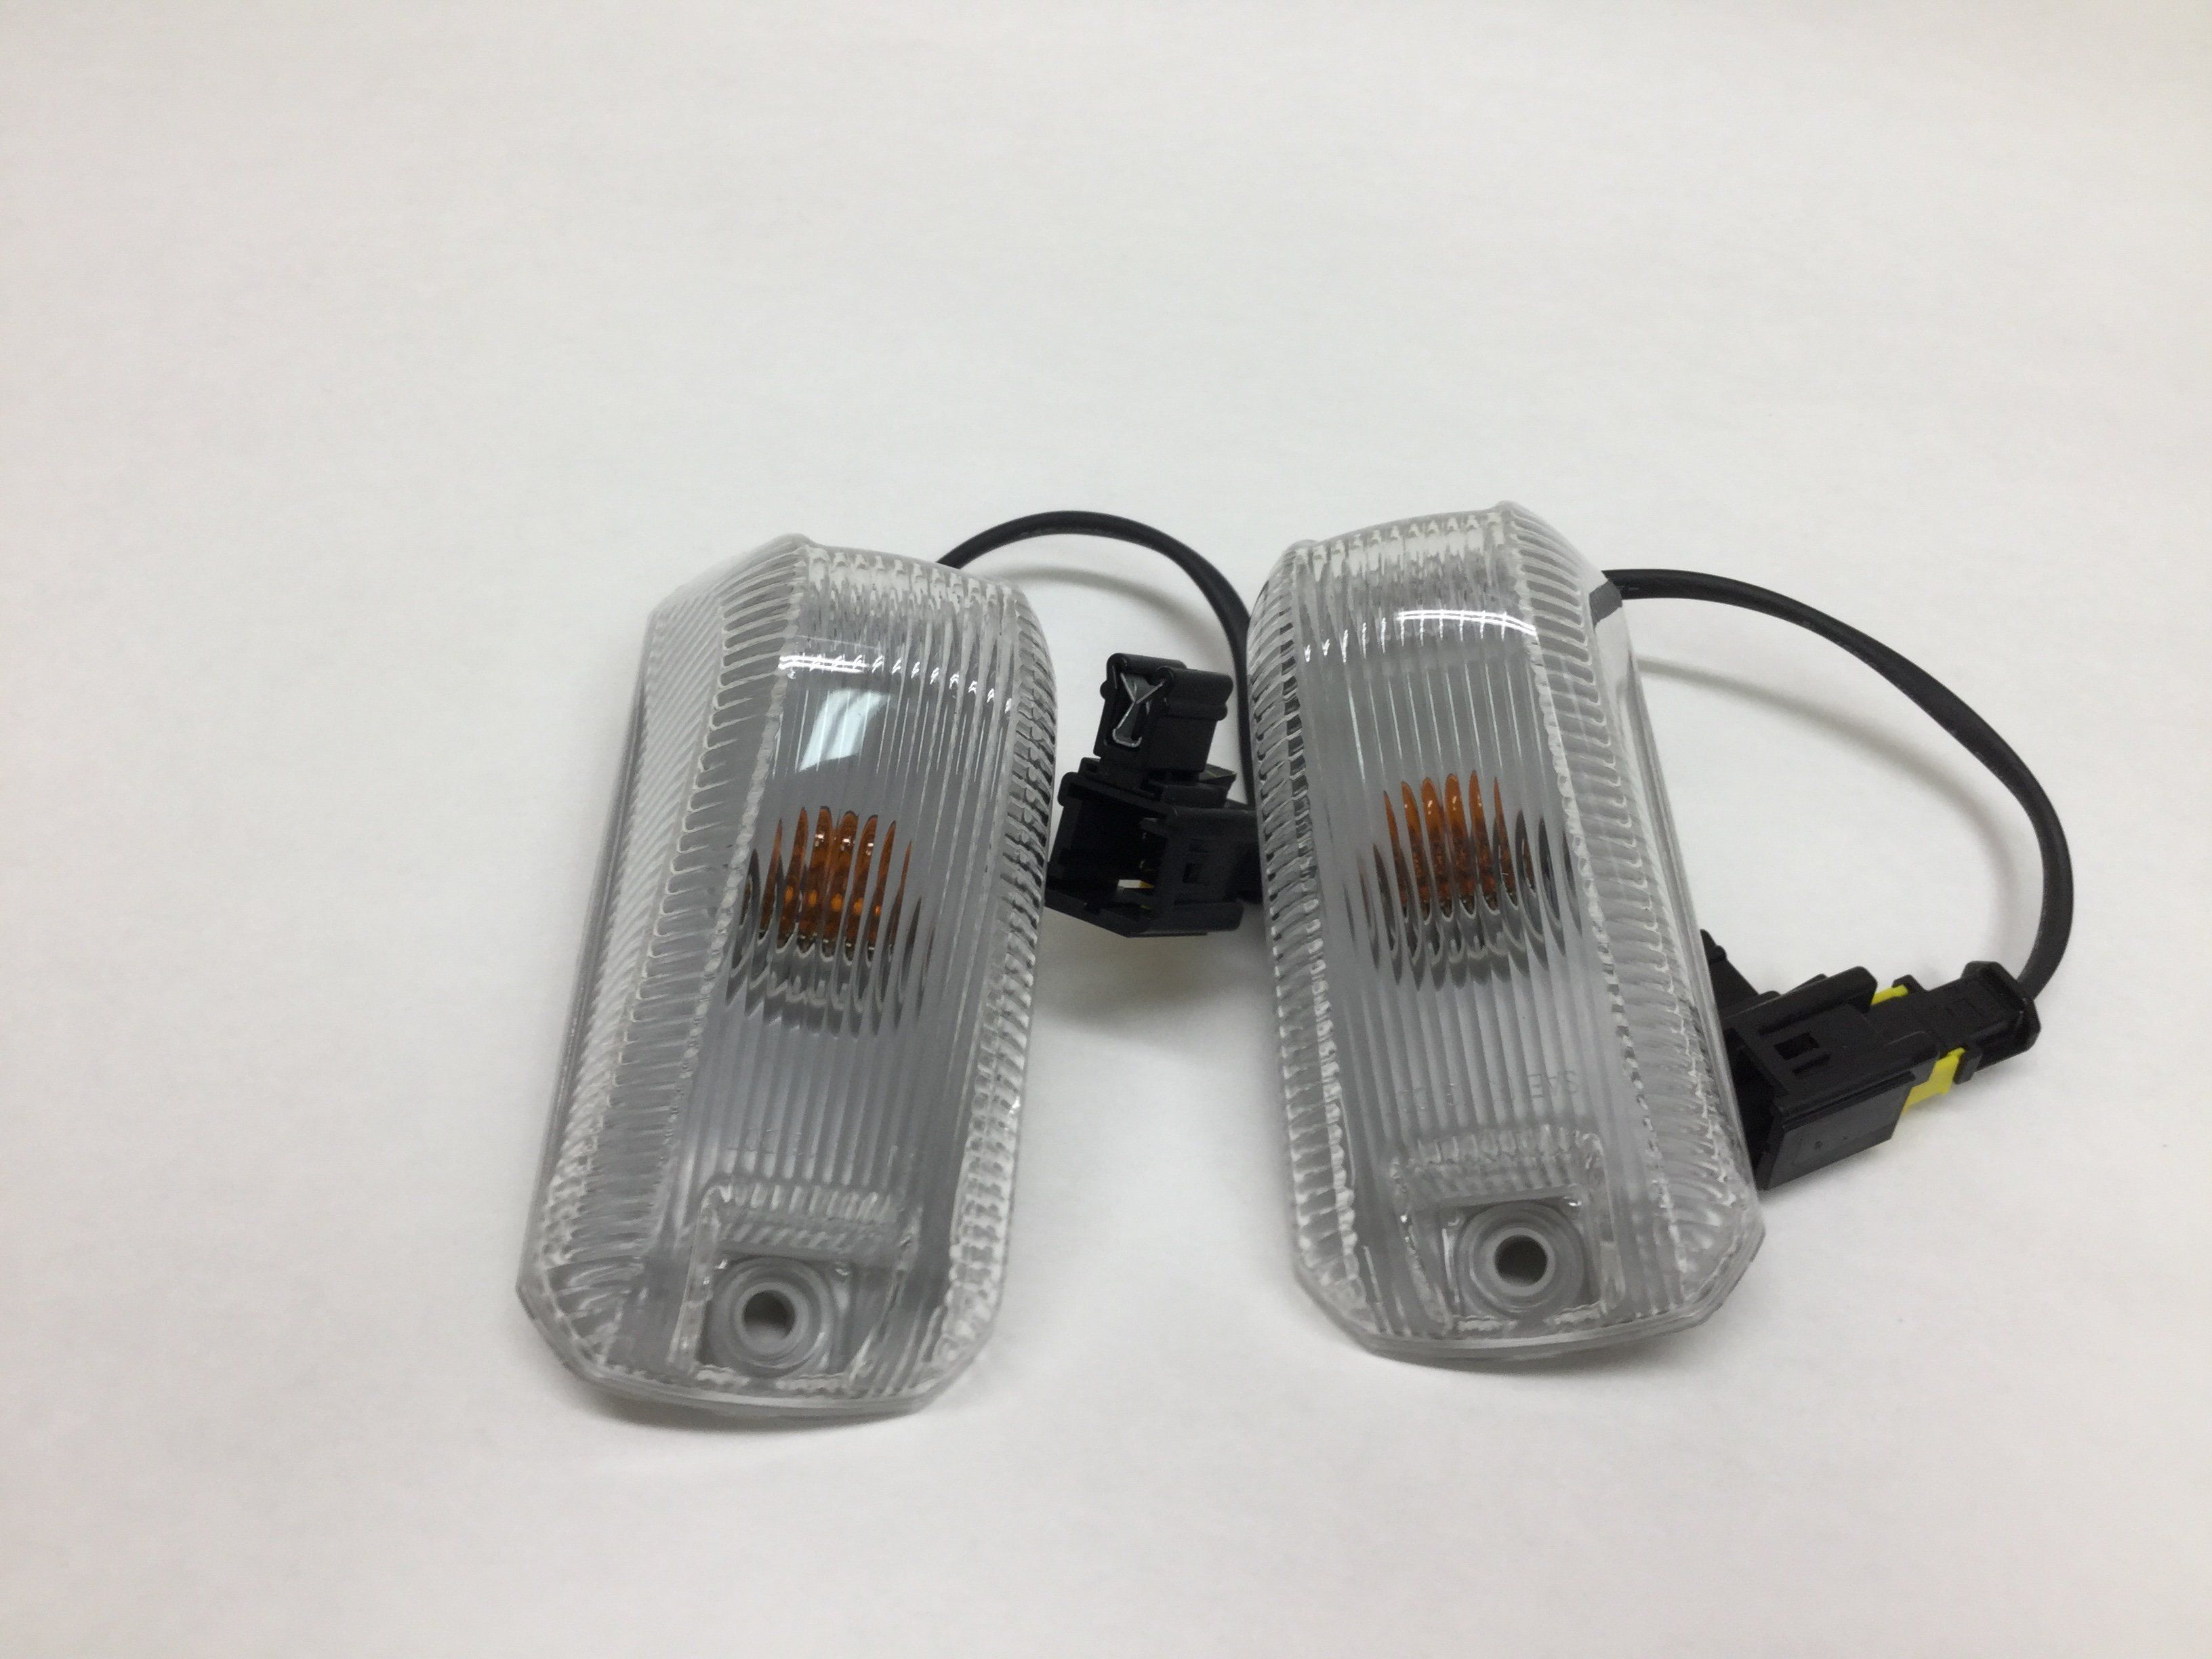 2014 2017 Ram Promaster Roof Lamp Mounted Running Light Set Of 2 Genuine New Parts Auto New Genuine Truck Car In 2020 Running Lights Ram Promaster Ram